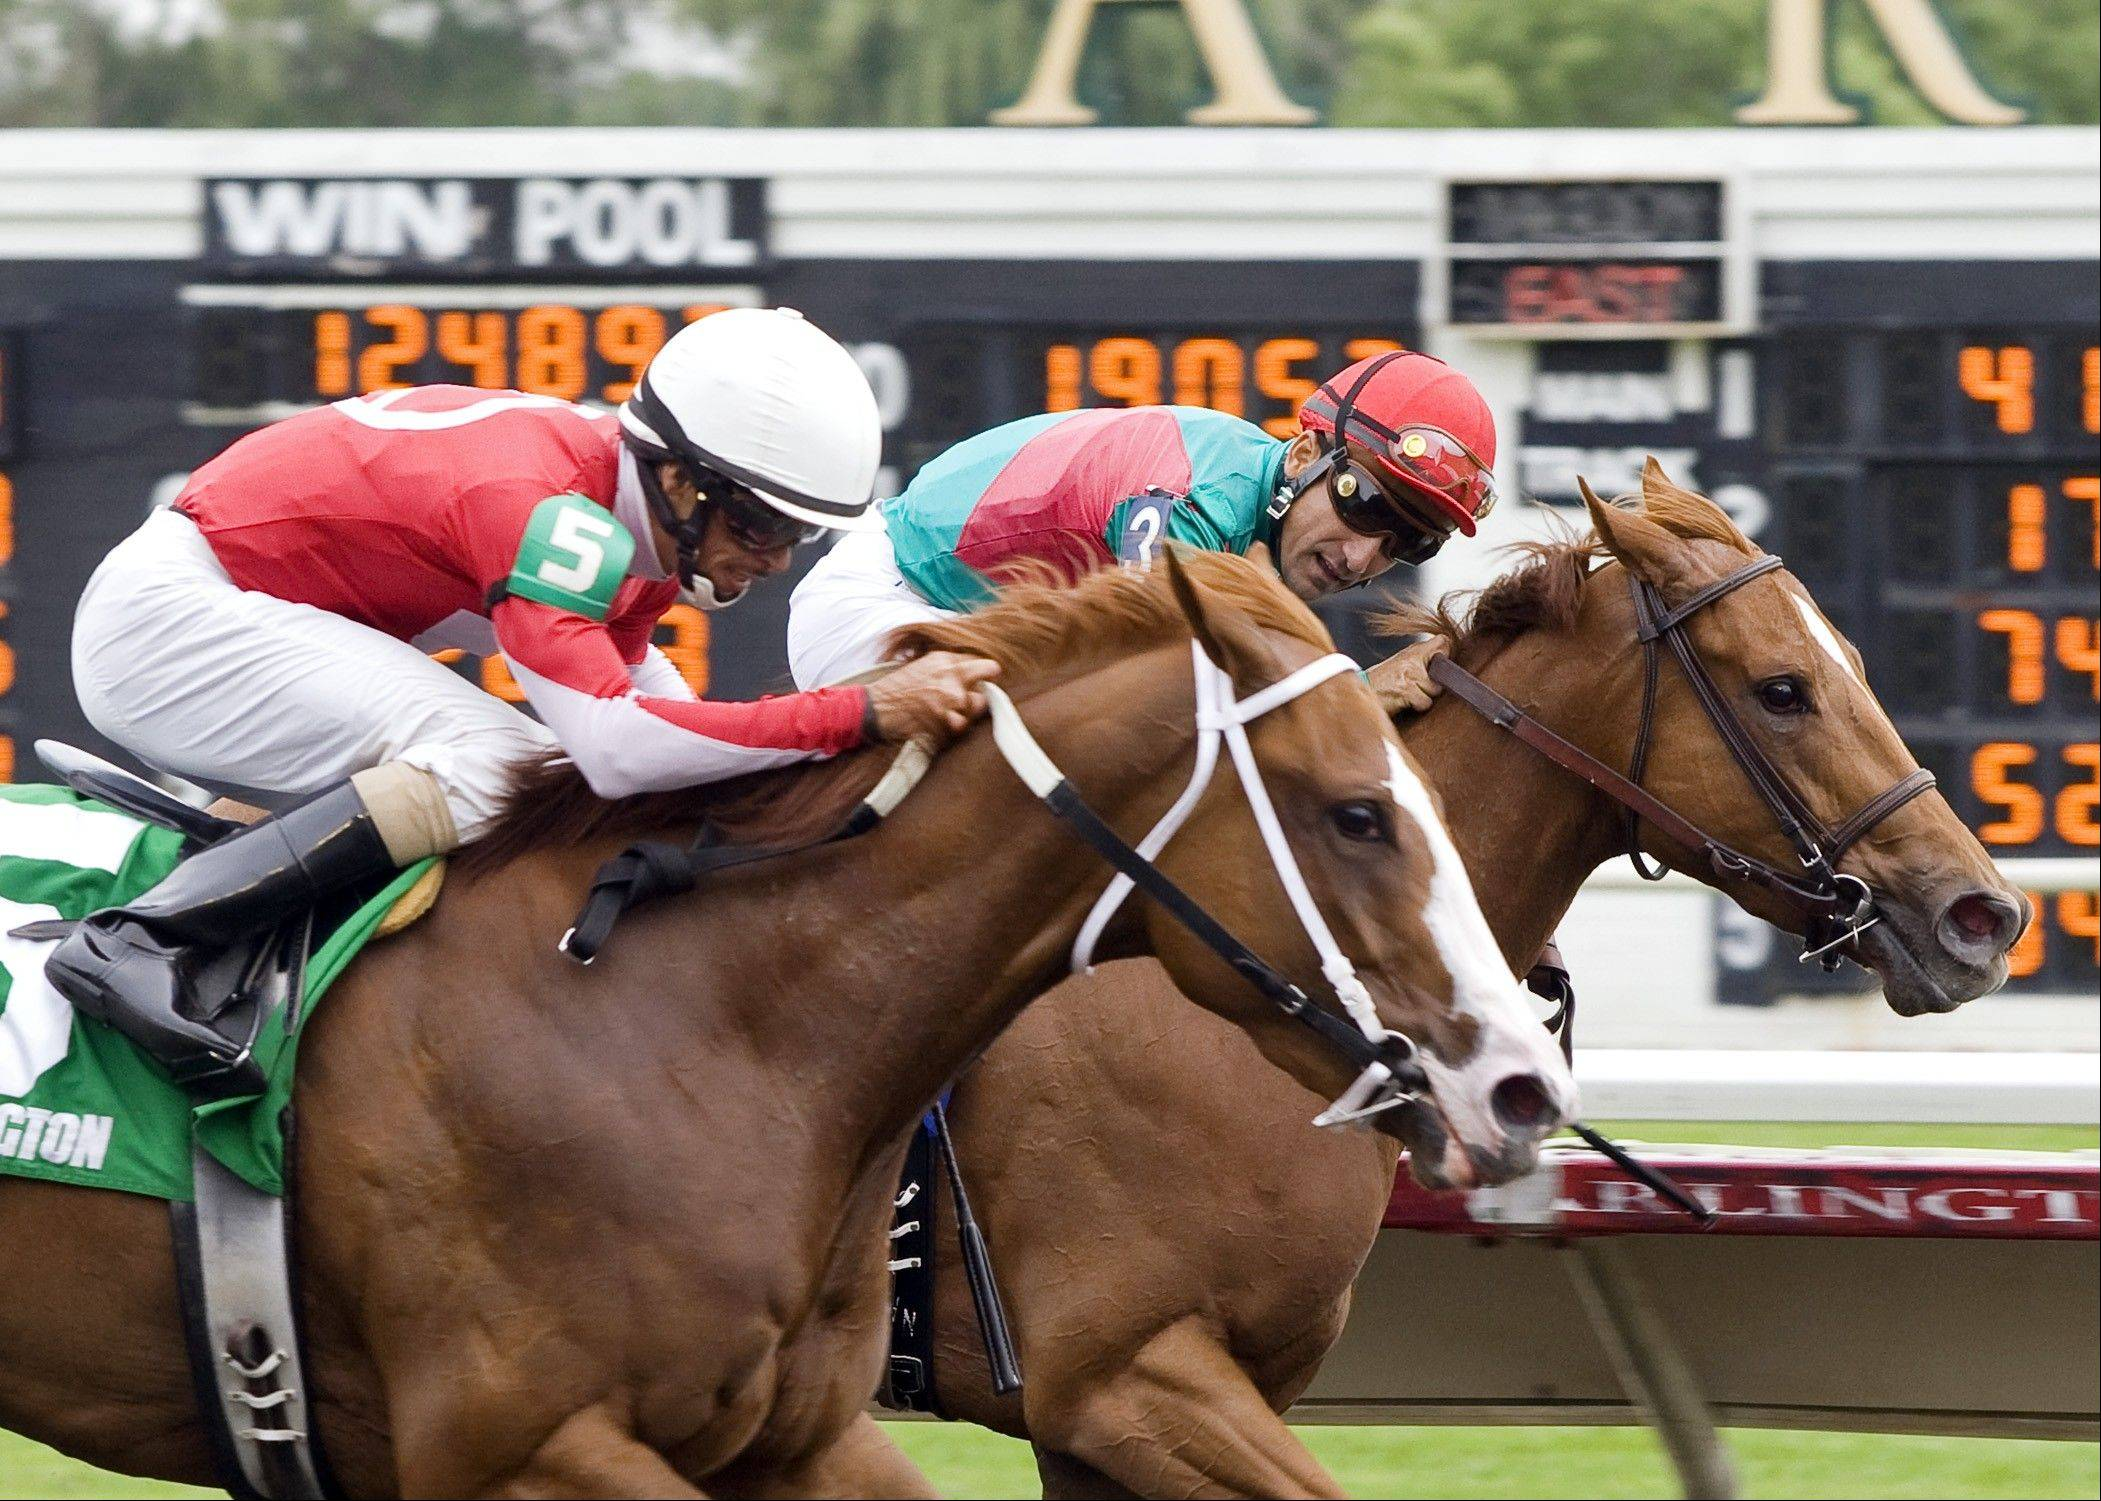 Our Lady in Red, with jockey Quincy Hamilton aboard, won last year's Purple Violet Stakes at Arlington Park. The Prairie State Festival returns Saturday with its six stakes races. The Purple Violet Stakes is a one-mile Polytrack race for 3-year-old fillies.